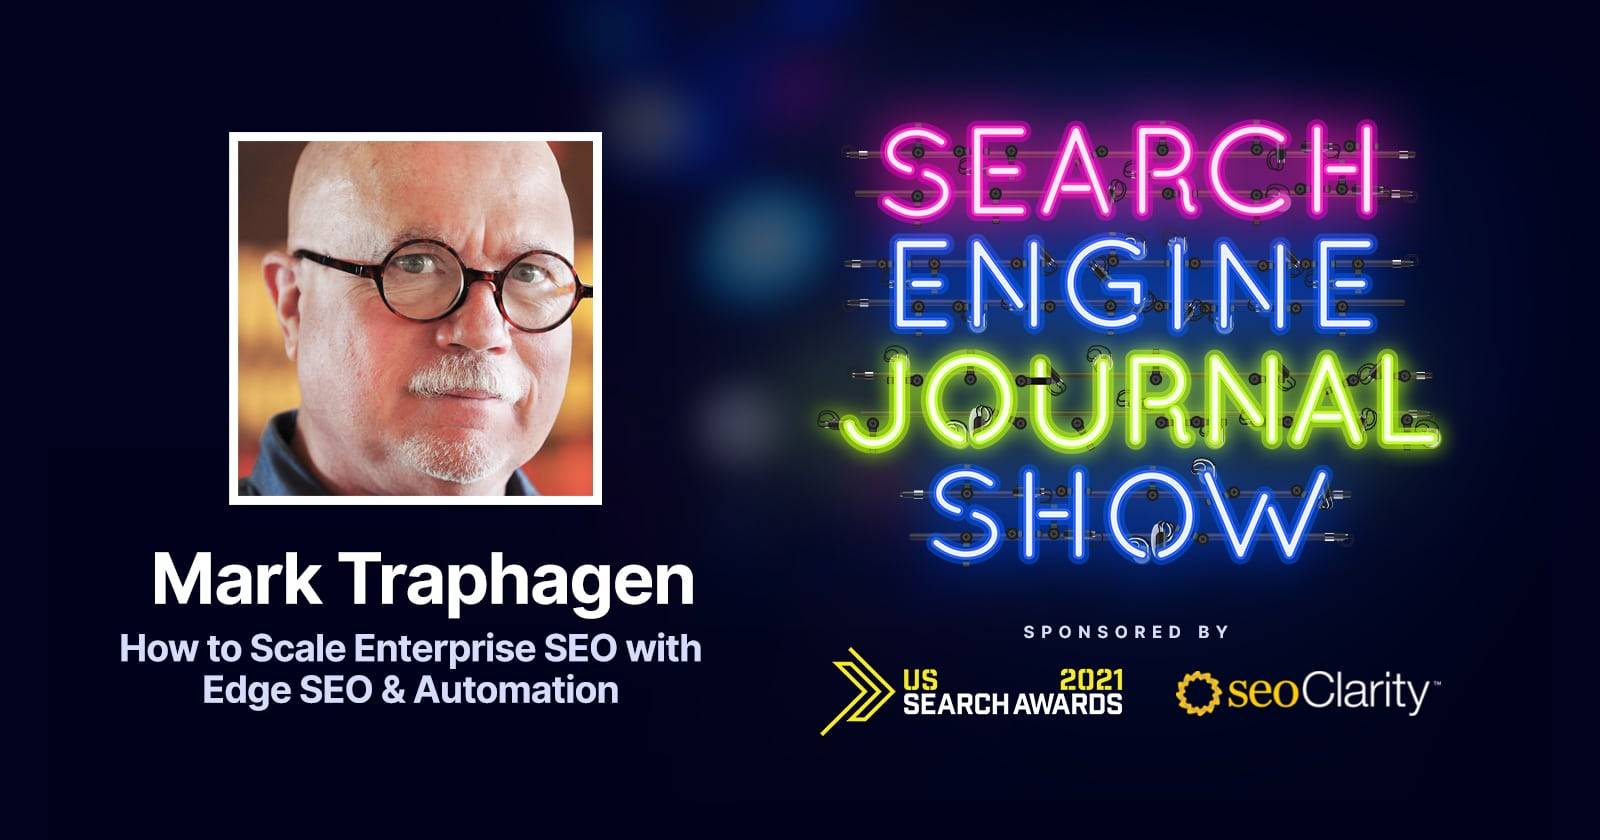 How to Scale Enterprise SEO with Edge SEO and Automation [Podcast] via @sejournal, @brentcsutoras